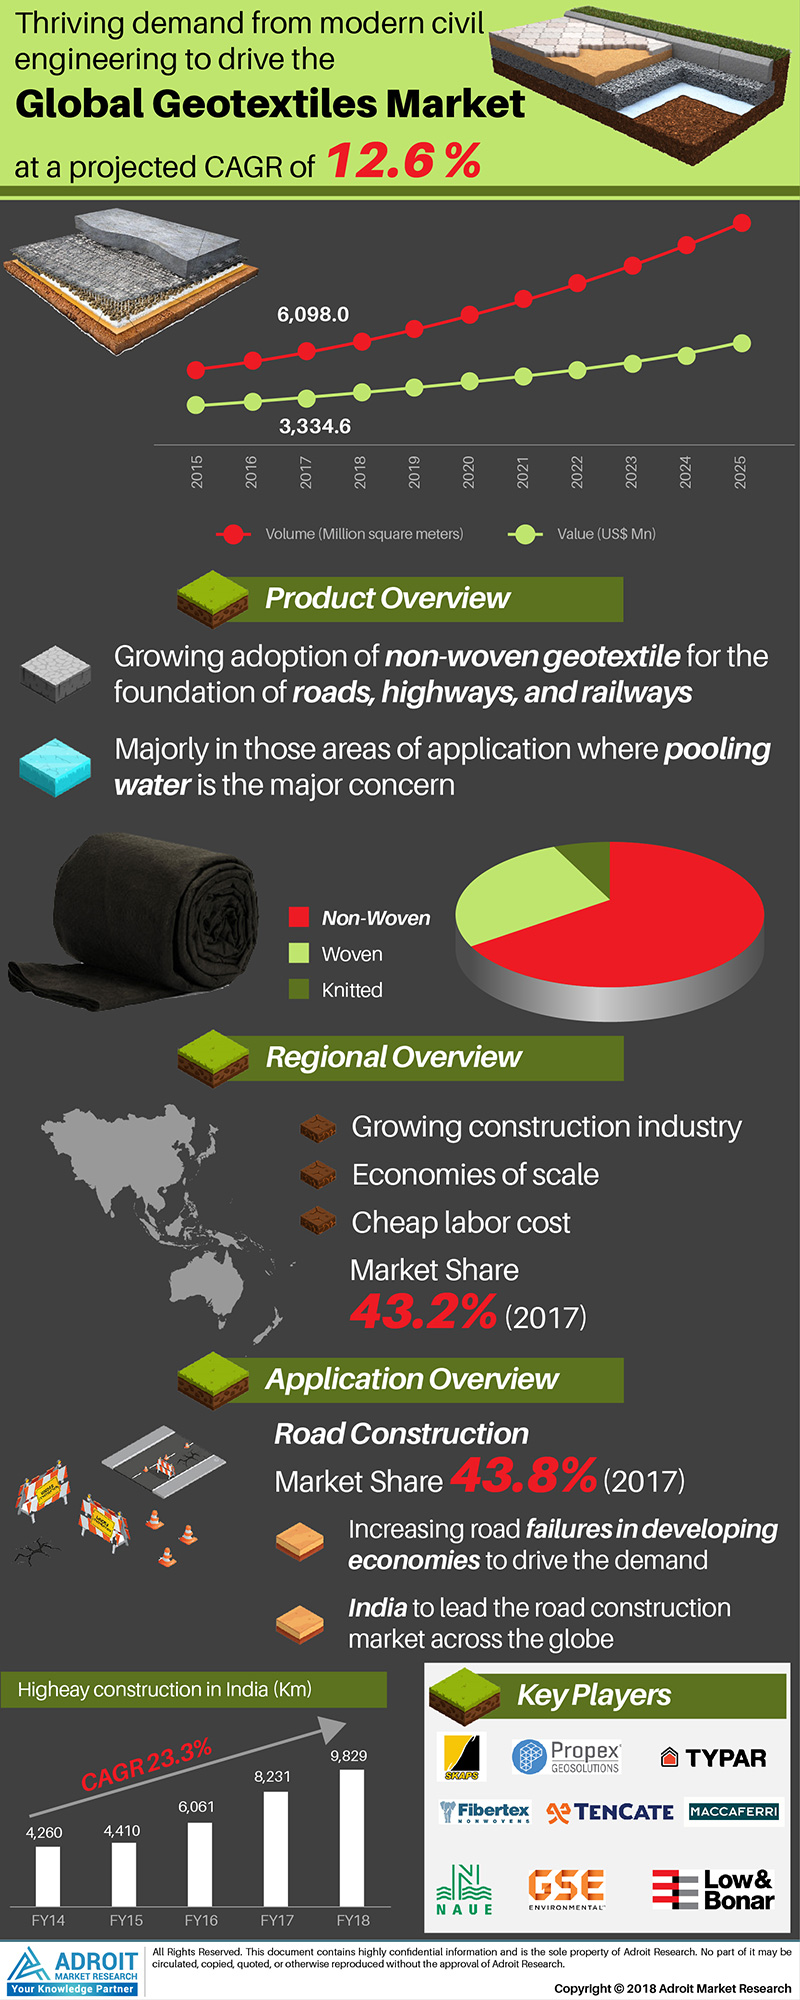 Global Geotextiles Market Size 2017 By Application and Forecast 2018 to 2025